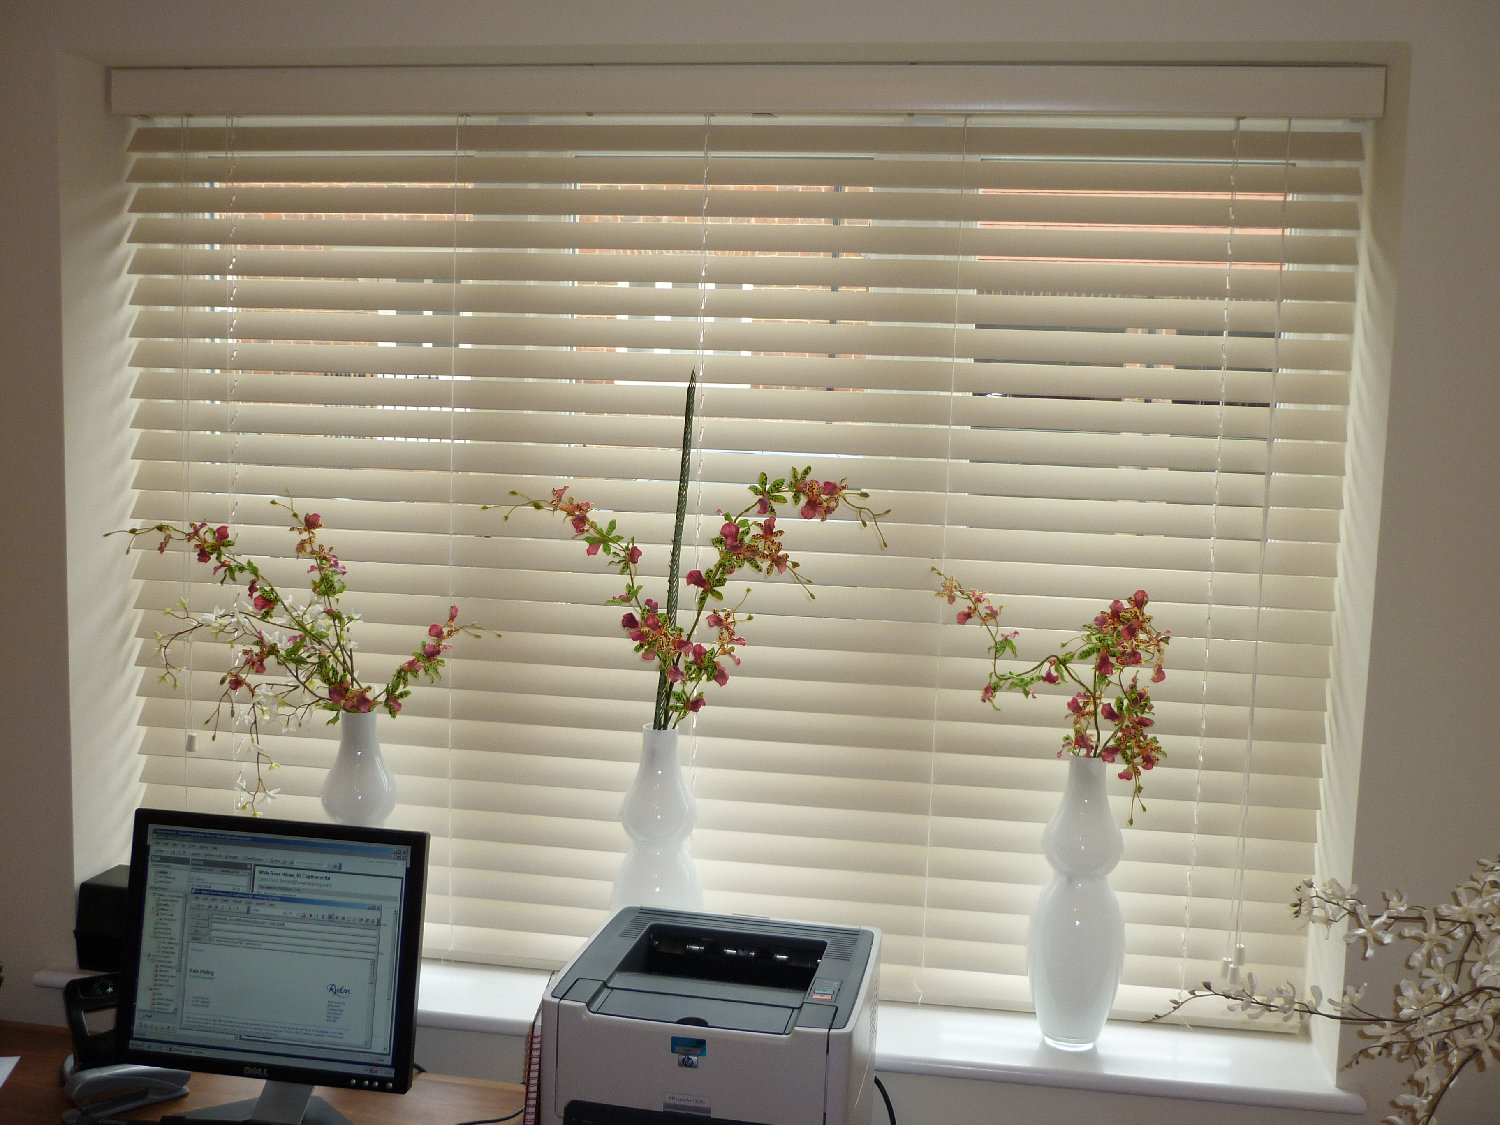 Wooden blinds by curtain creation in surrey